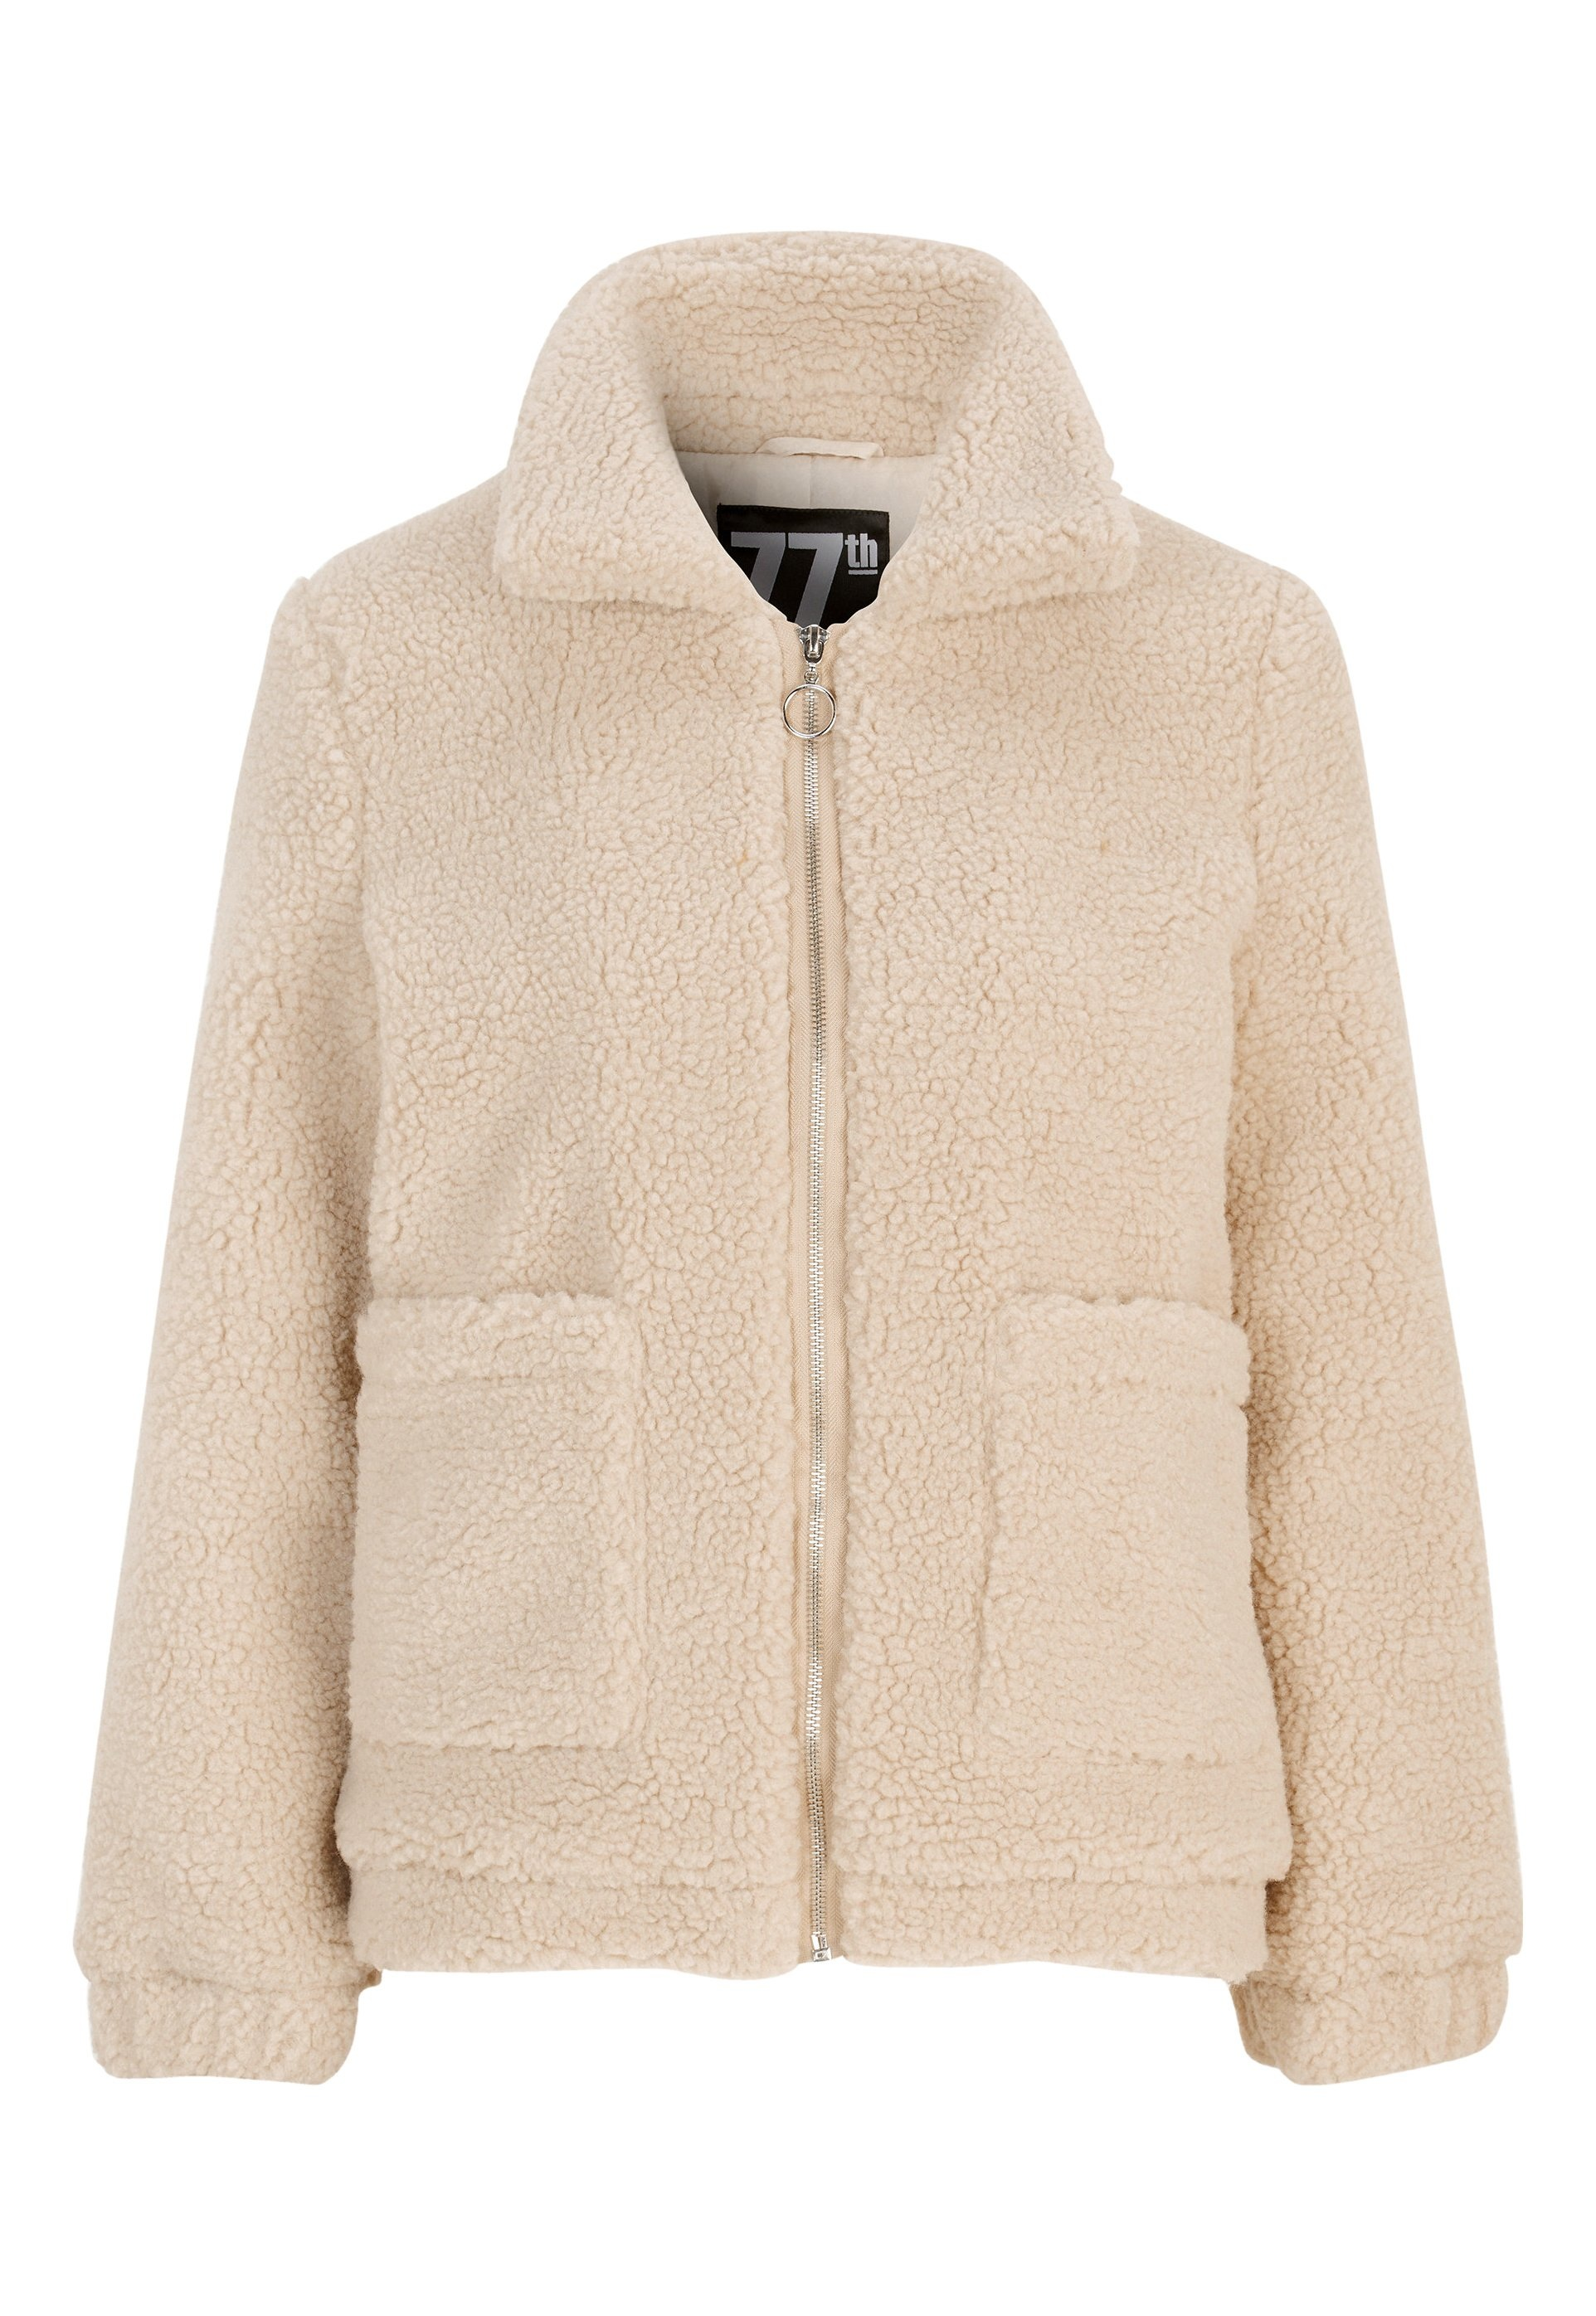 77thflea-tove-teddy-jacket-light-beige_13